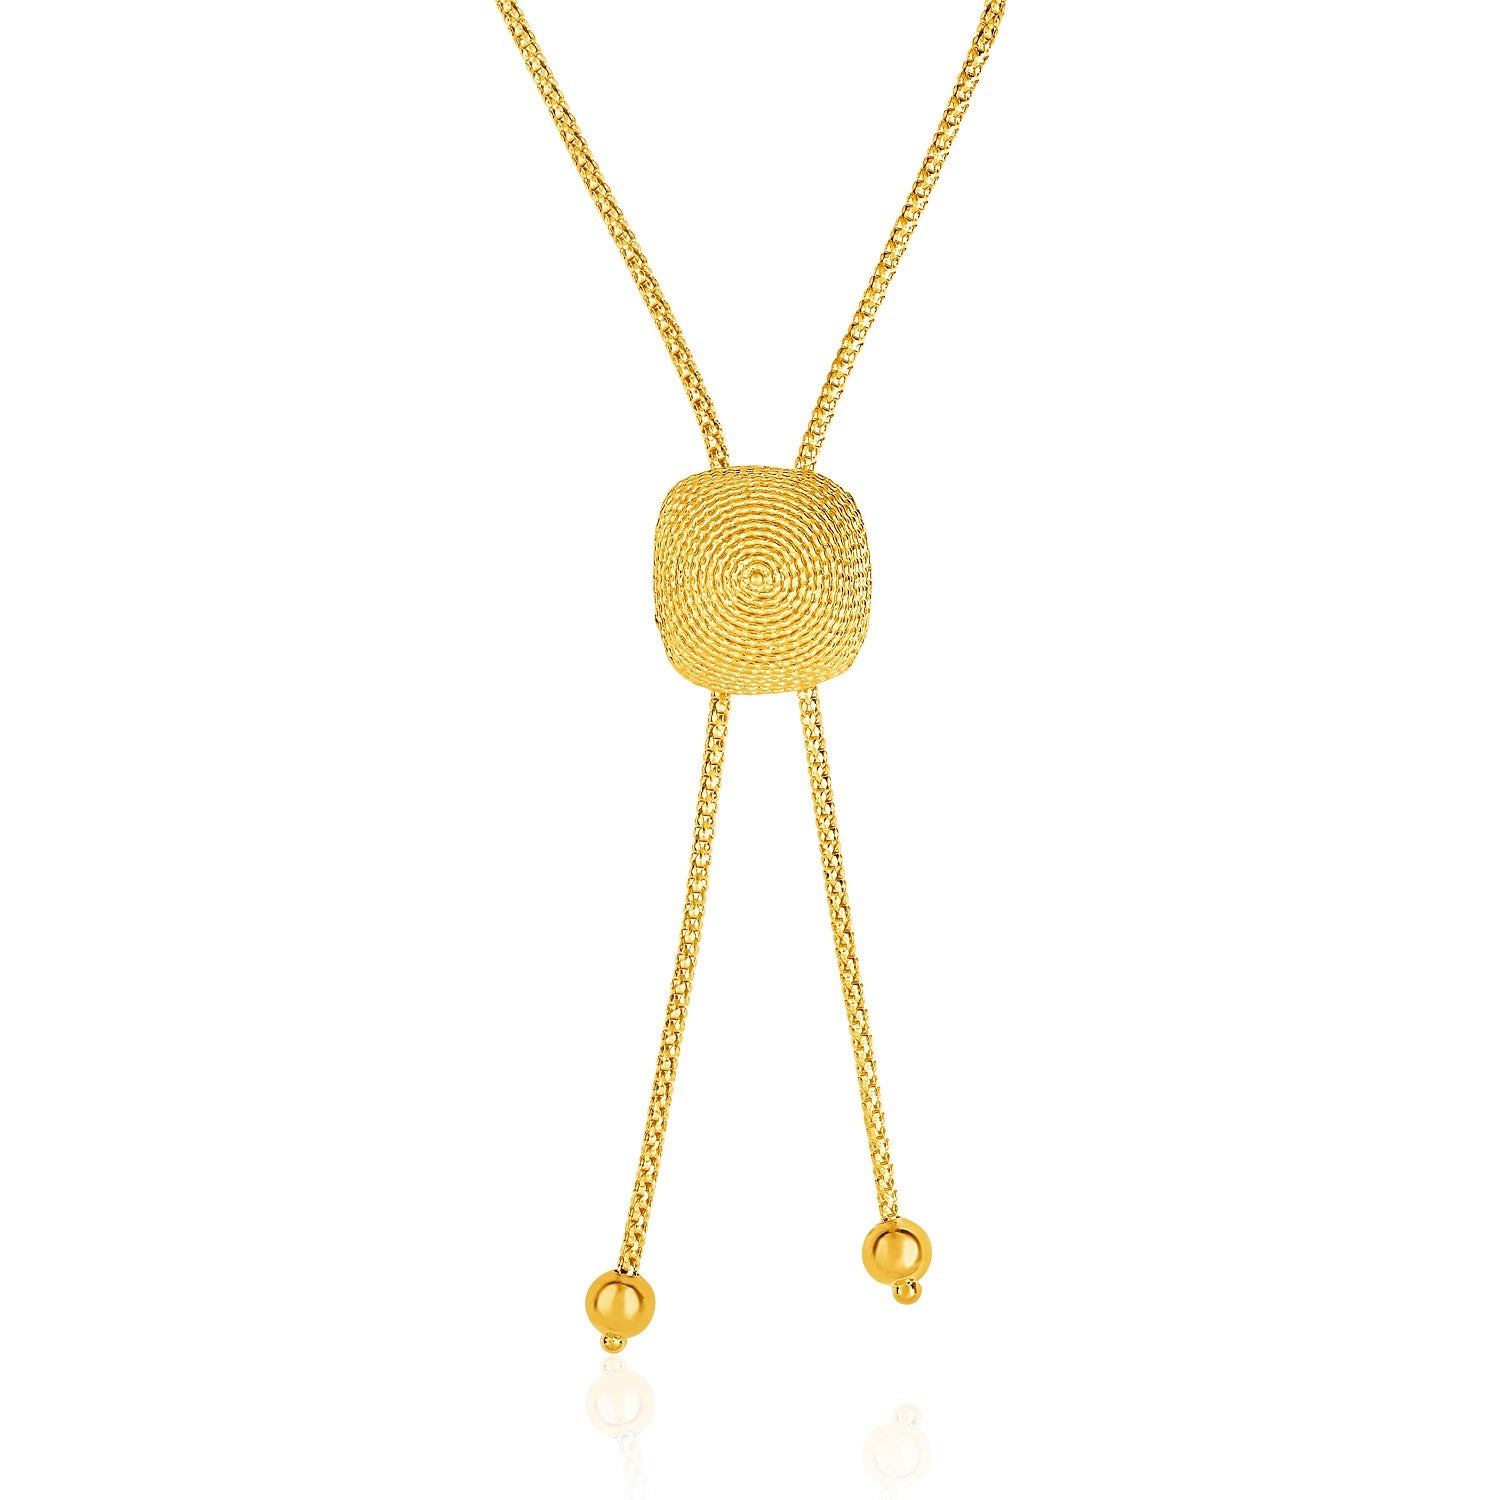 14K Yellow Gold Adjustable Lariat Necklace with Textured Semi-Square Dome